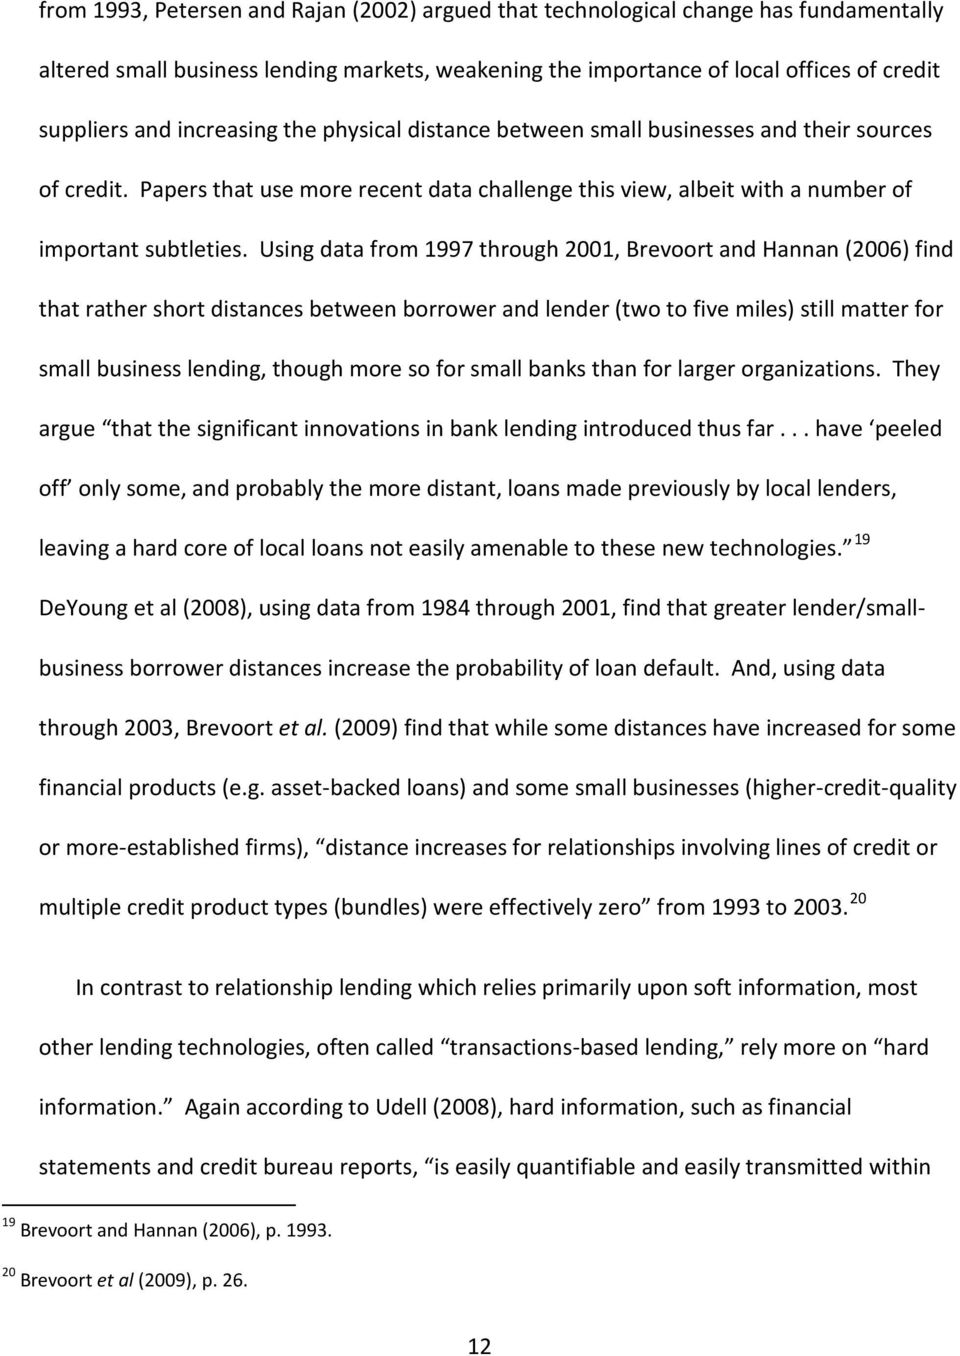 Using data from 1997 through 2001, Brevoort and Hannan (2006) find that rather short distances between borrower and lender (two to five miles) still matter for small business lending, though more so